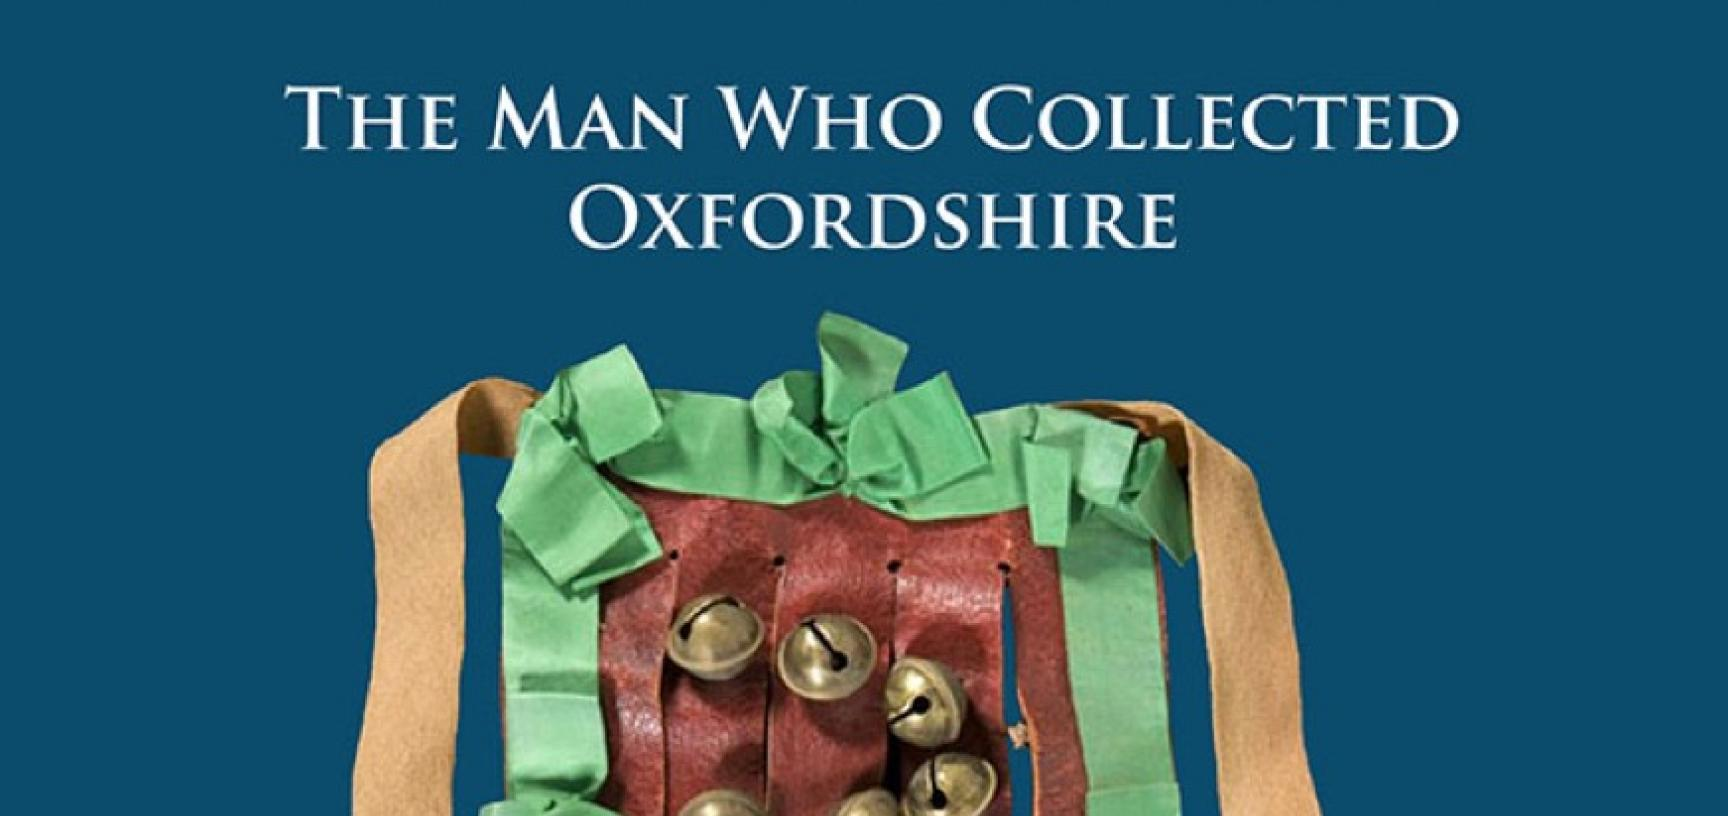 Michael Heaney (ed.), Percy Manning: The Man Who Collected Oxfordshire (Oxford: Archaeopress, 2017). ISBN 978-1-78491-528-5